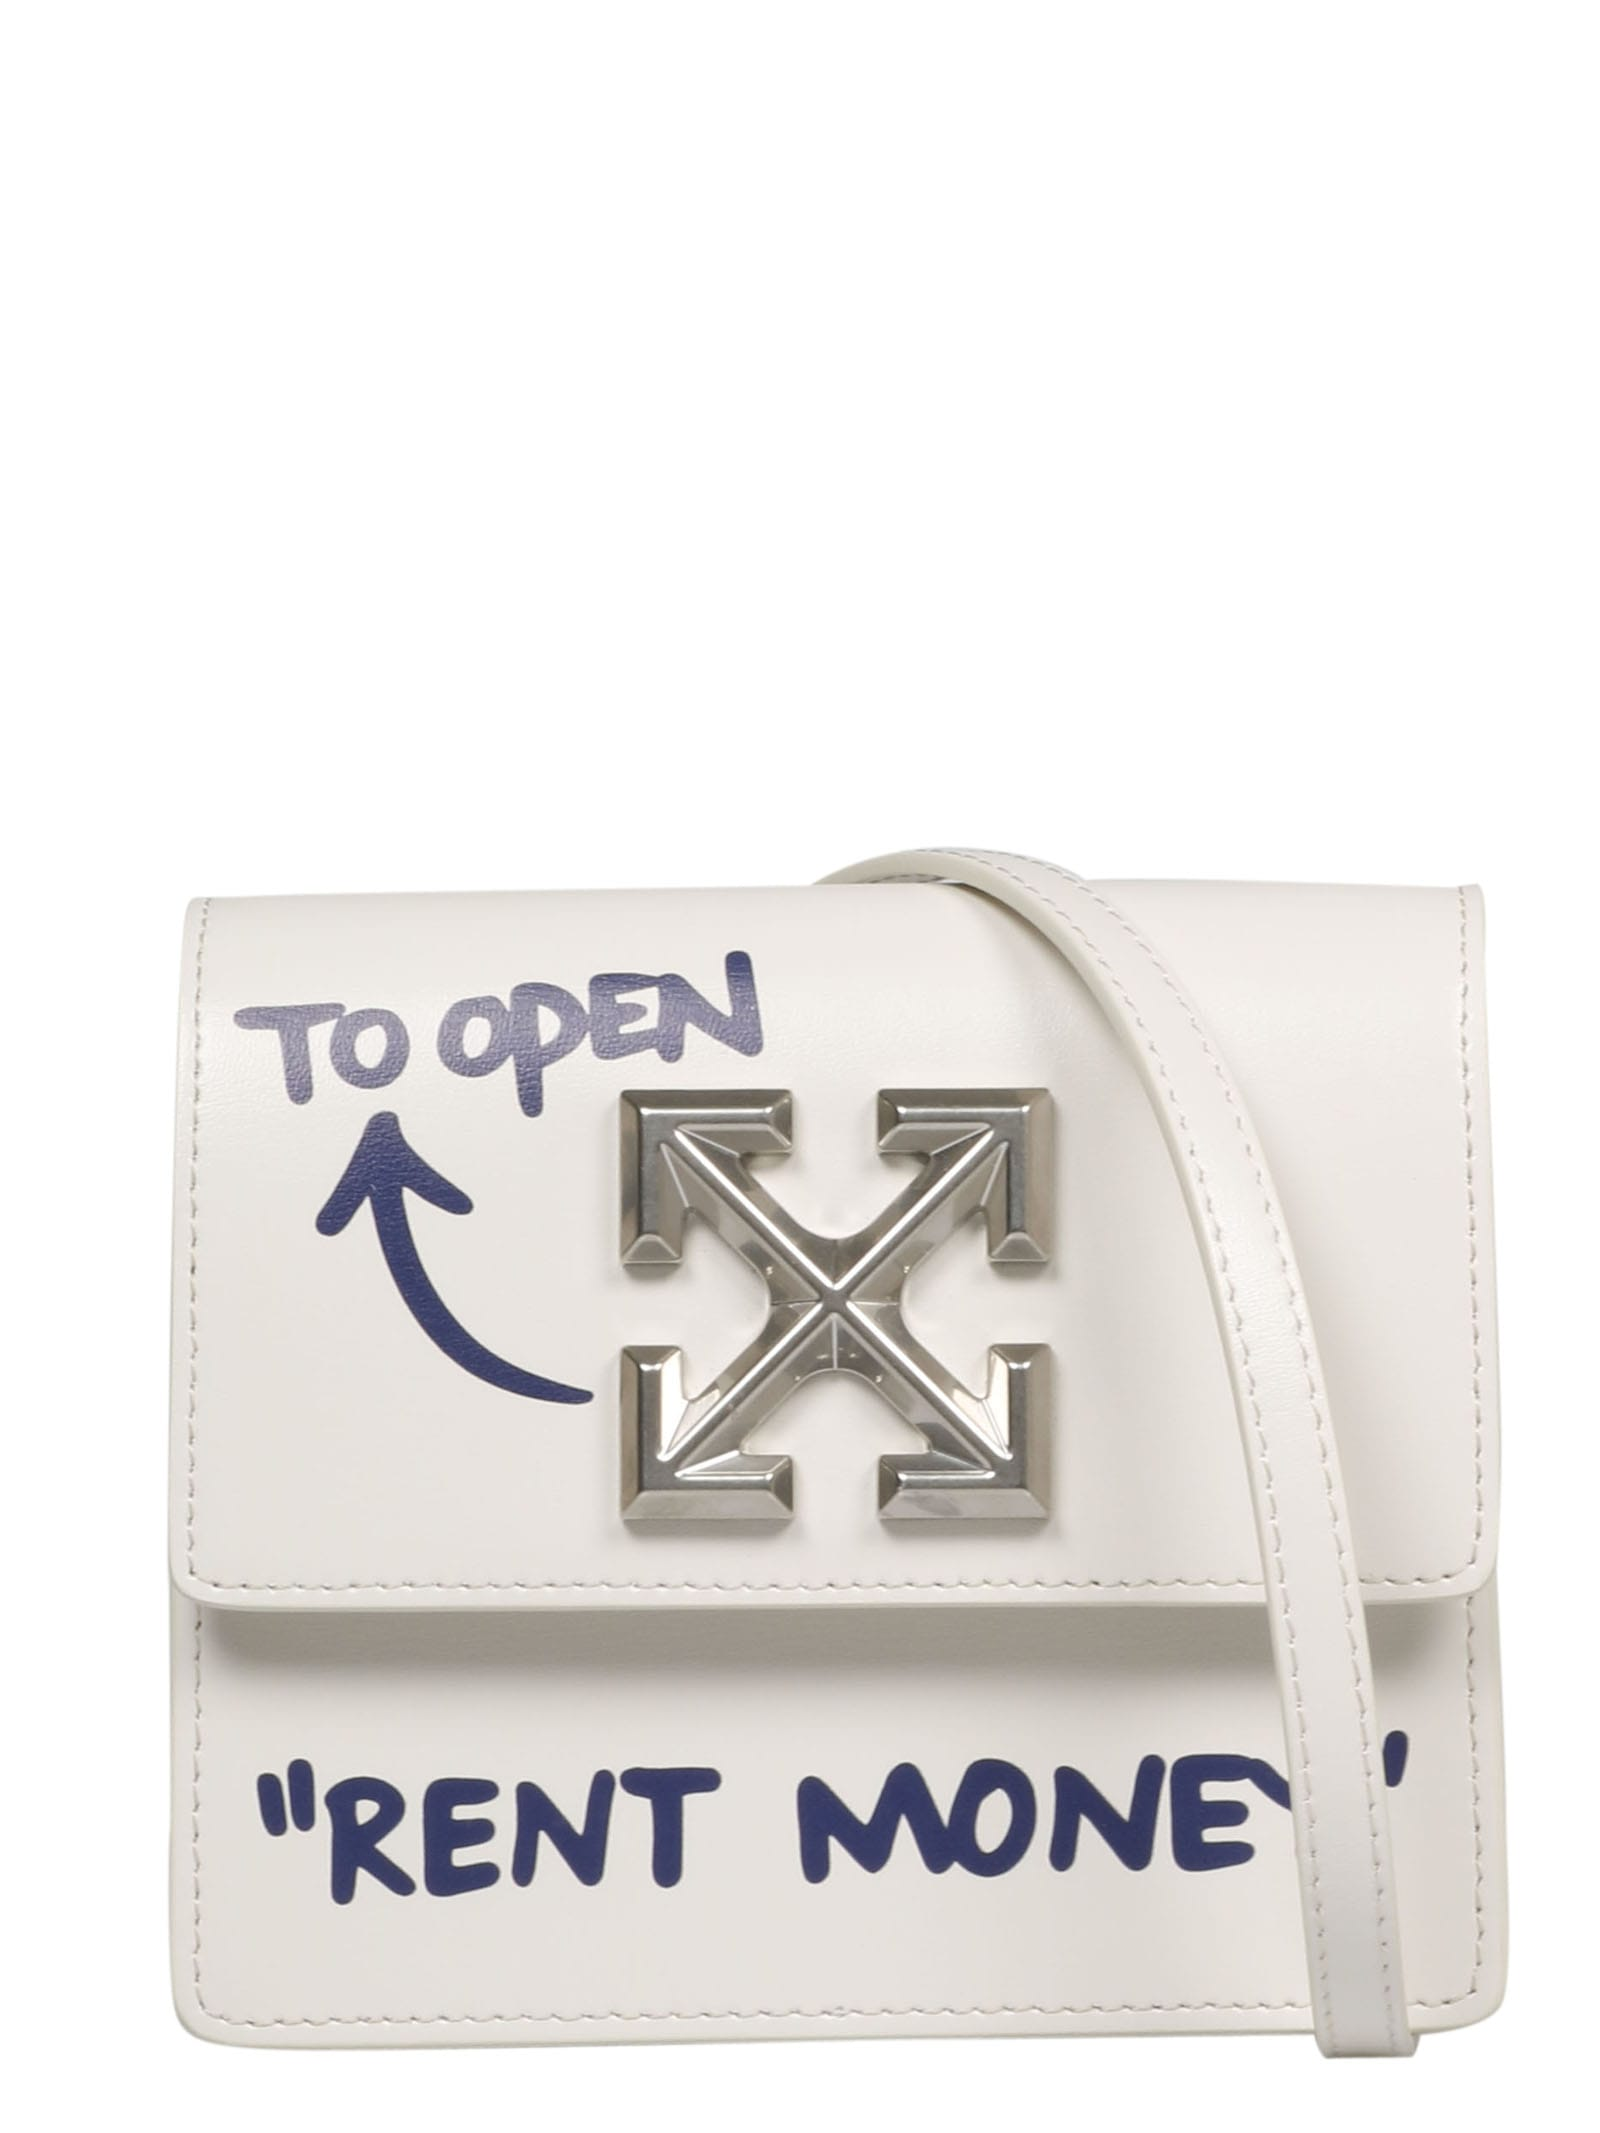 OFF-WHITE QUOTE JITNEY 0.7 BAG